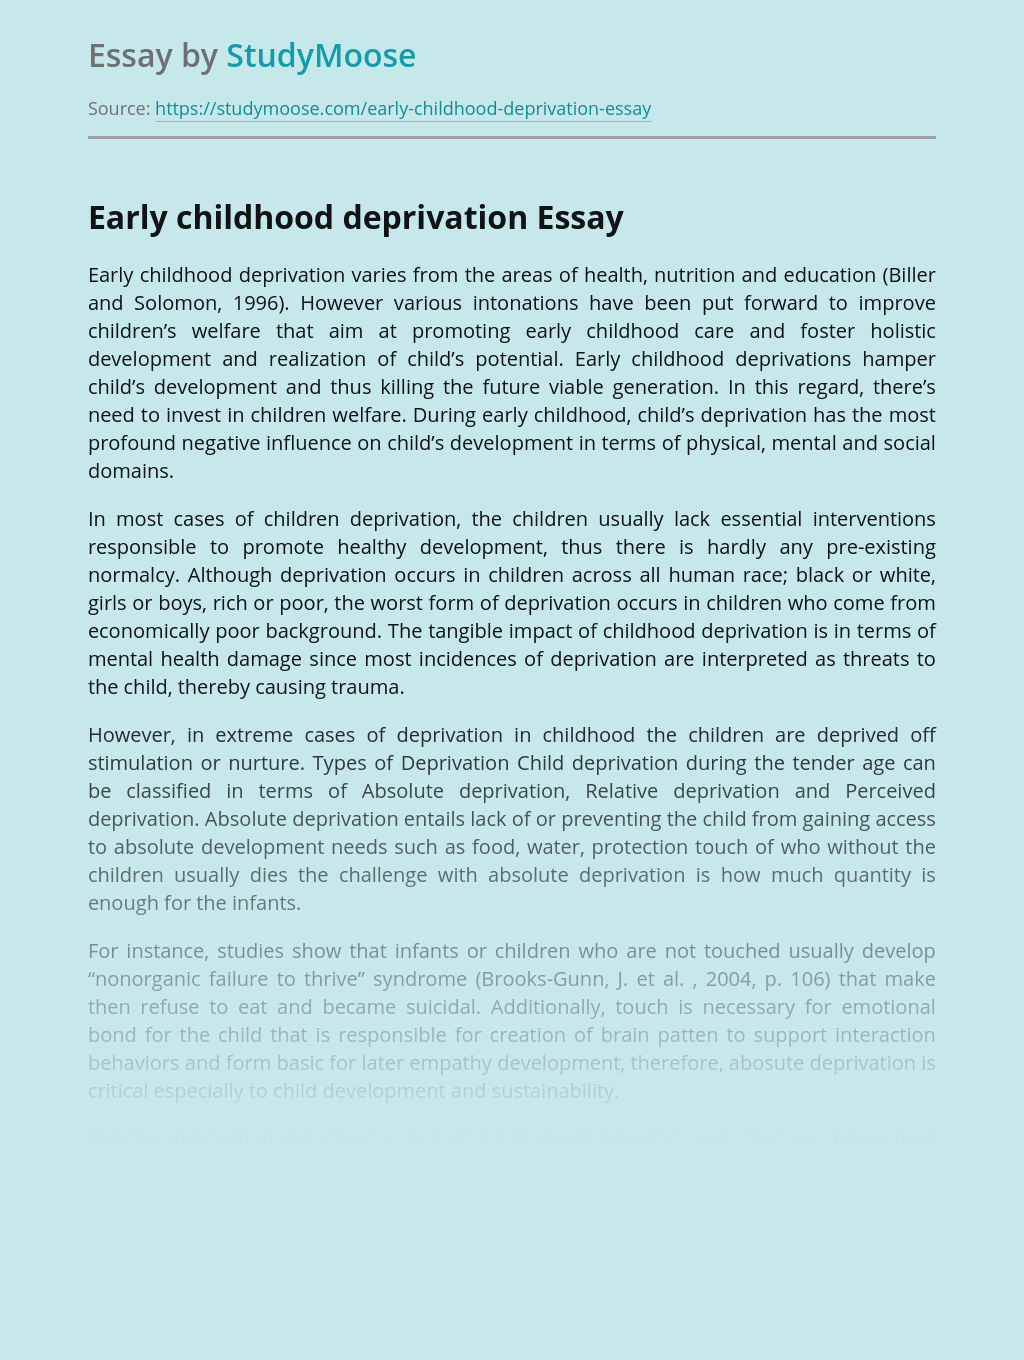 Early childhood deprivation